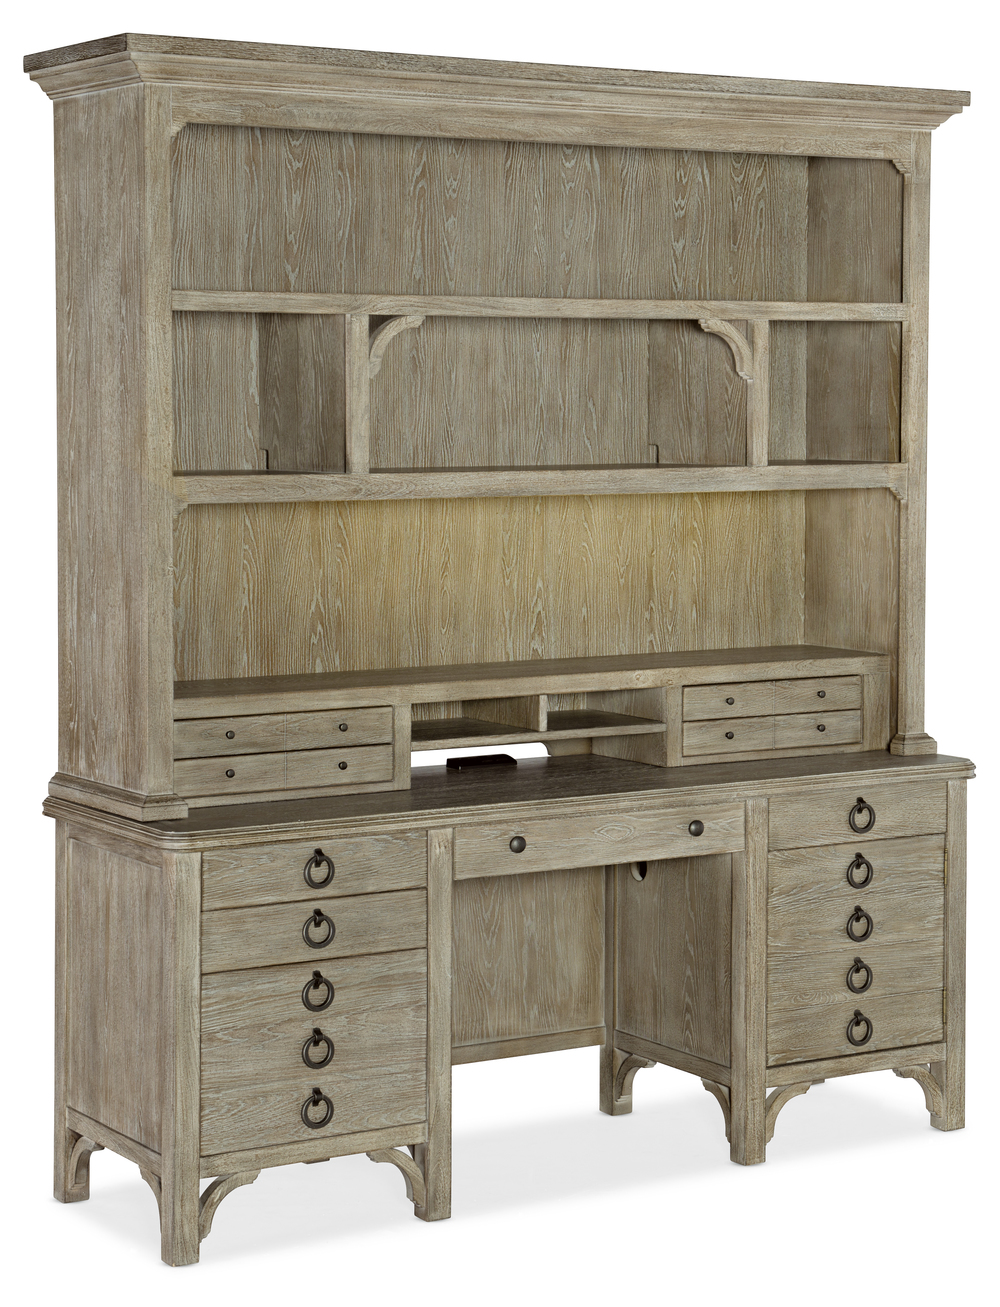 Hooker Furniture - Repose Credenza